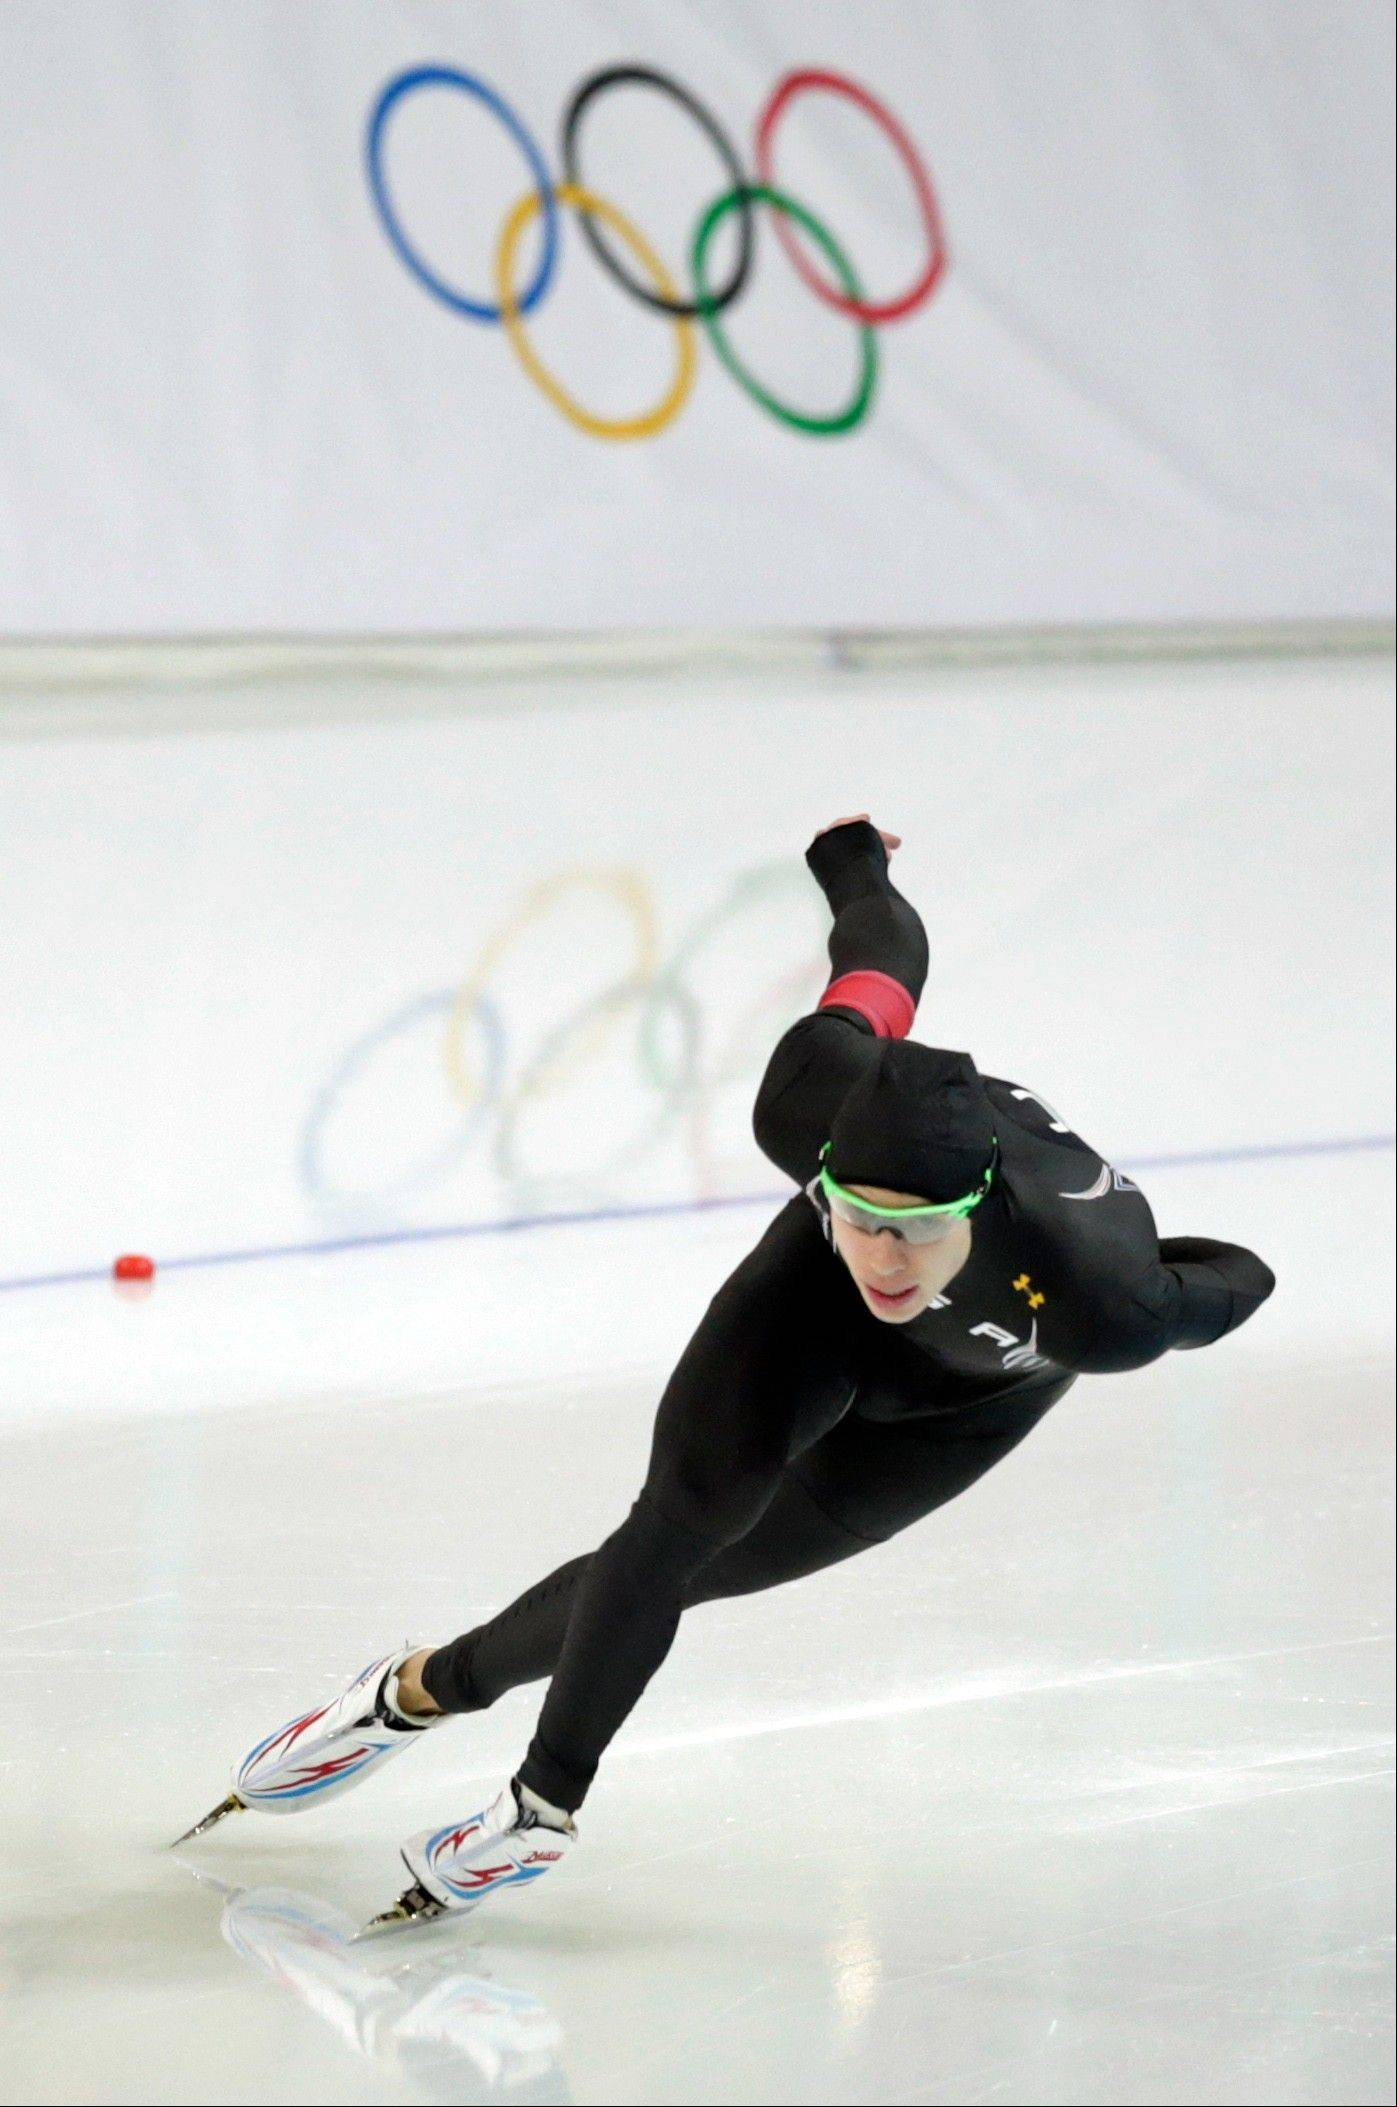 Brian Hansen of the United States team skates during a test race at the Adler Arena Skating Center during the 2014 Winter Olympics in Sochi, Russia. The Glenbrook South grad could medal in the 1,000 meter, 1,500 meter and Team Pursuit events.